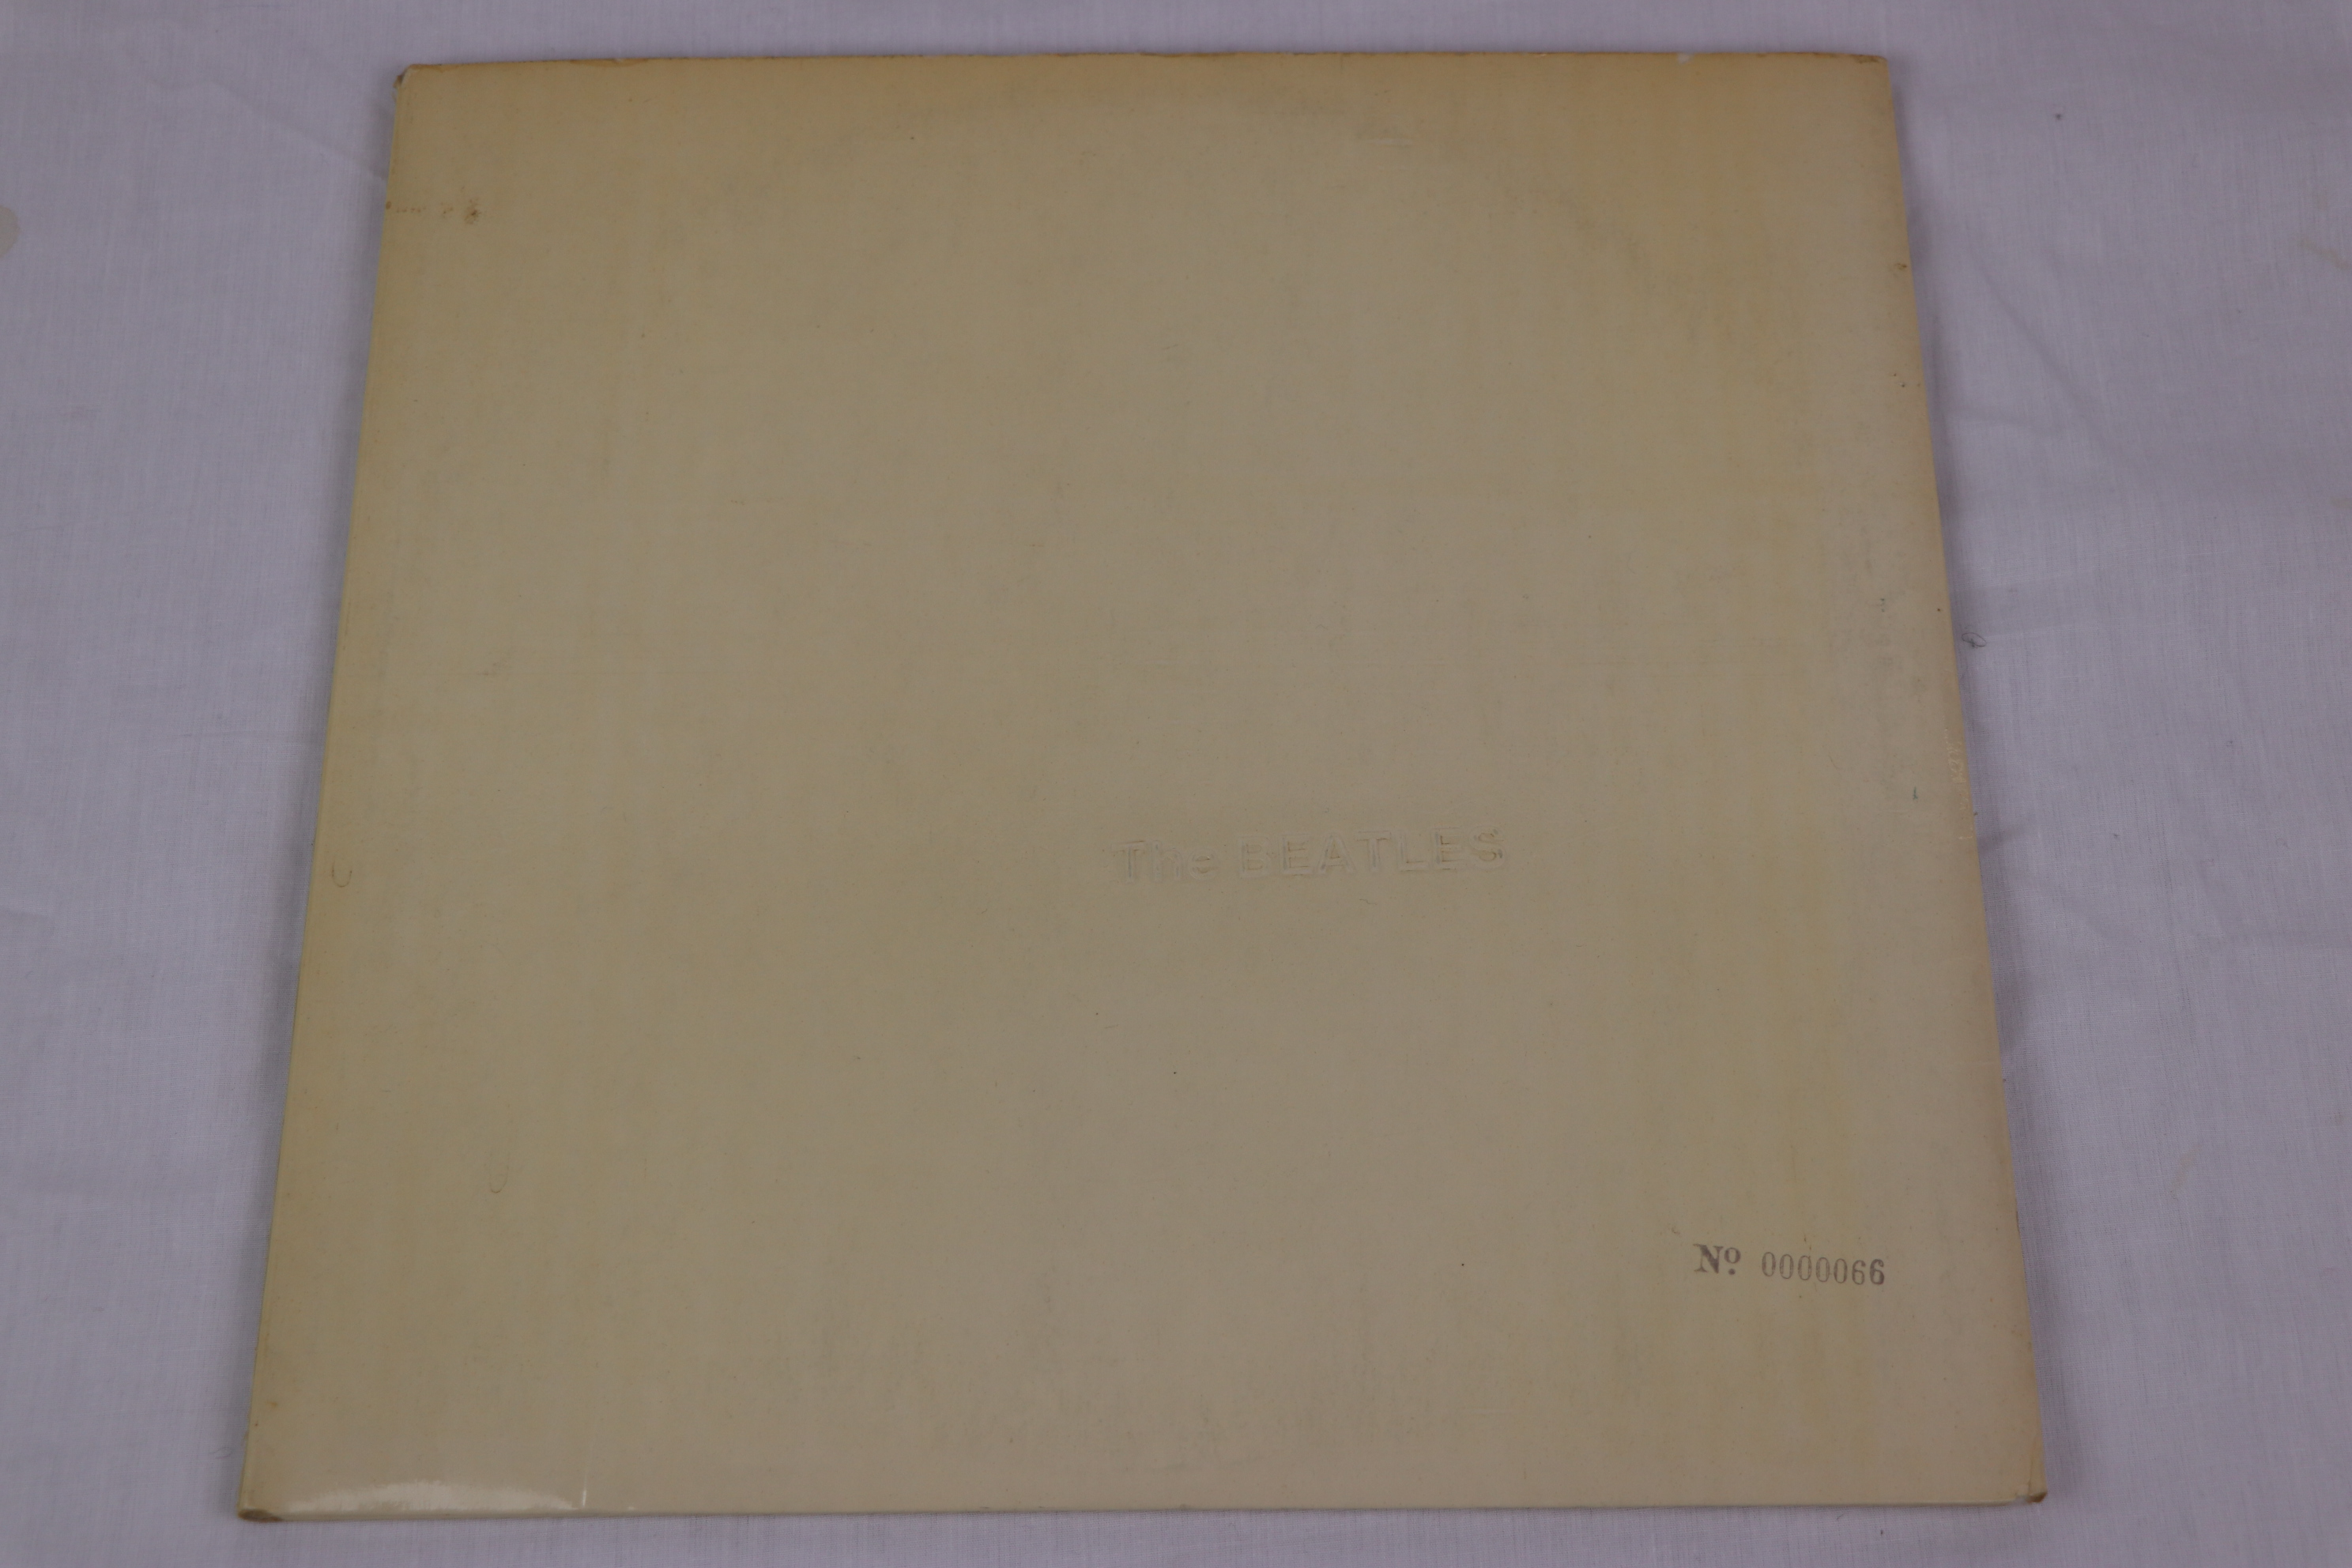 Beatles_White_Album_Sold_2400.JPG